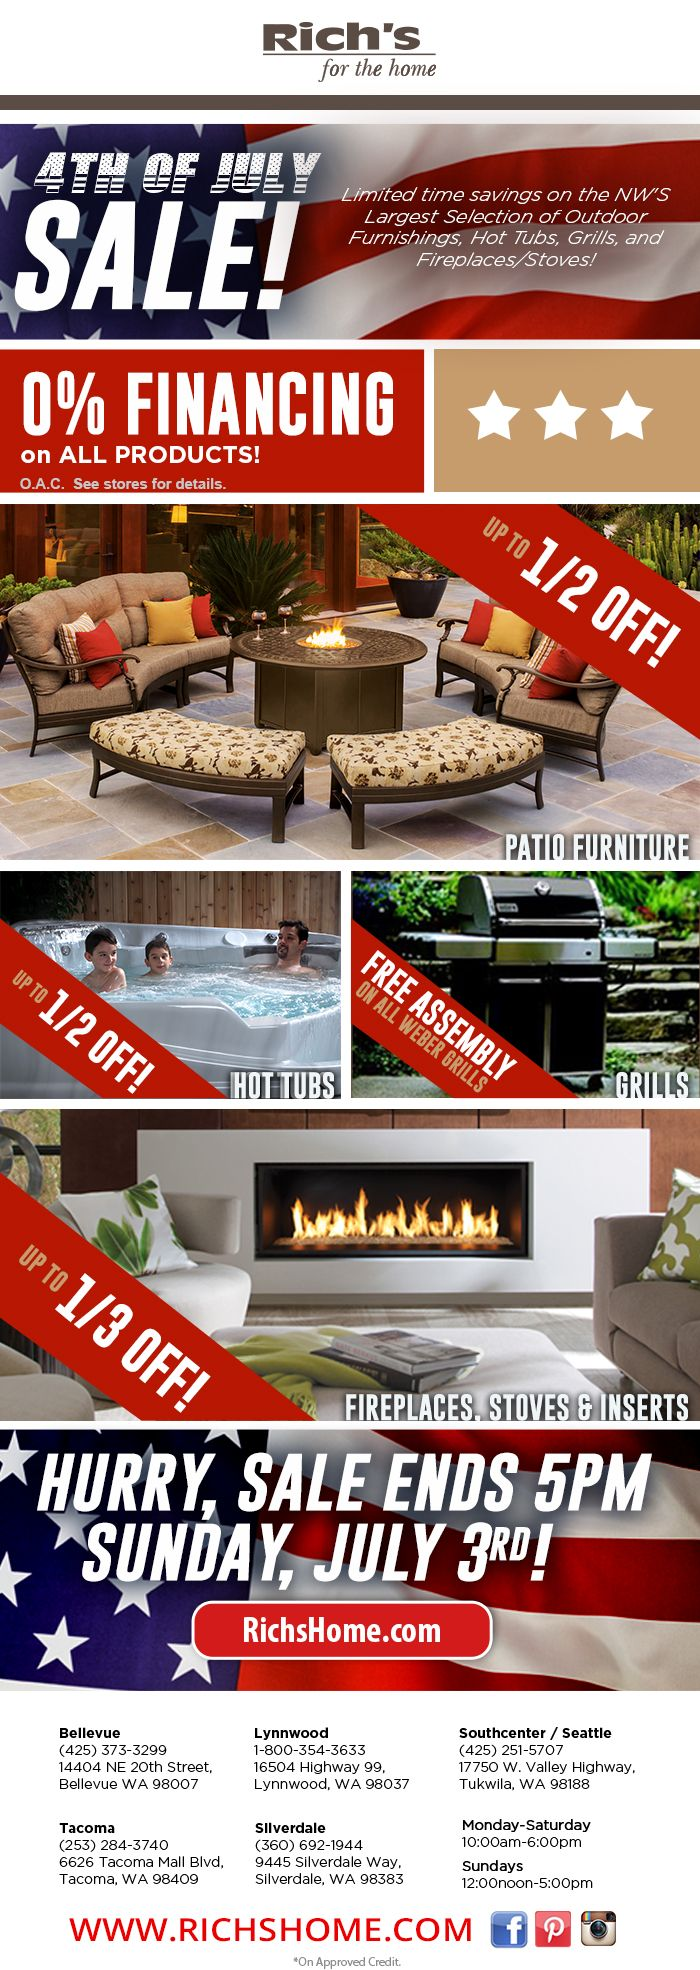 76 best hot tubs and spas images on pinterest hot tubs coast spas and for the home